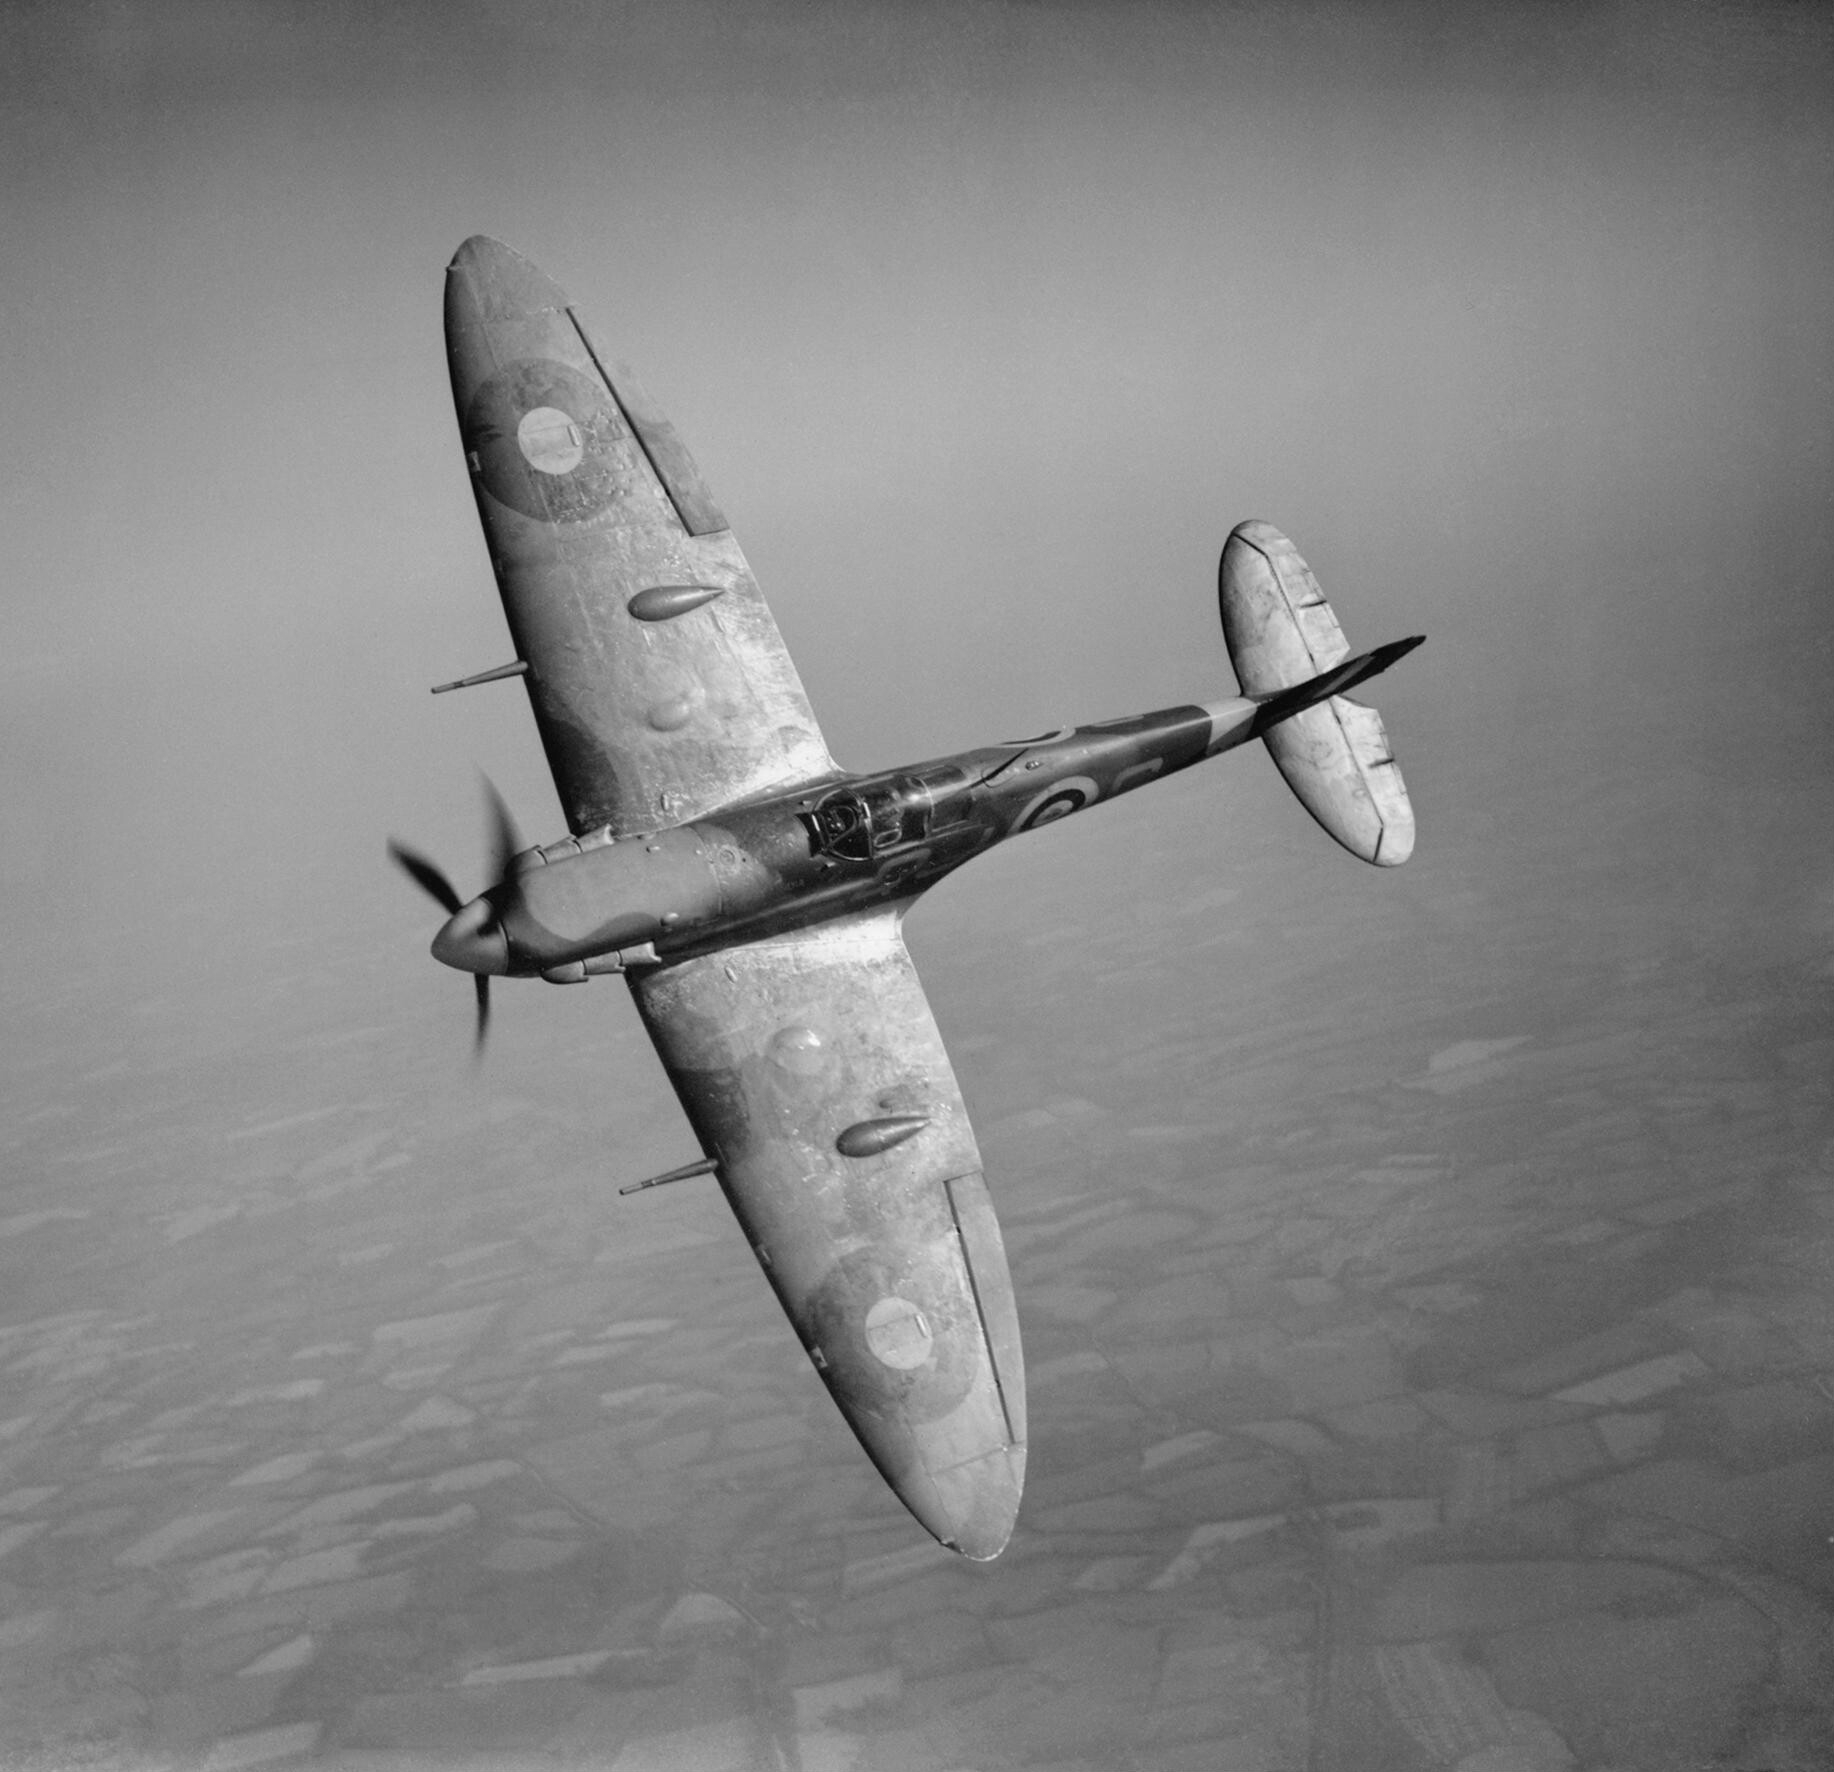 Supermarine_Spitfire_Mk_Vb_of_No._92_Squadron,_19_May_1941._This_aircraft,_serial_R6923,_was_shot_down_by_a_Messerschmitt_Bf_109_on_22_June_1941._CH2929.jpg